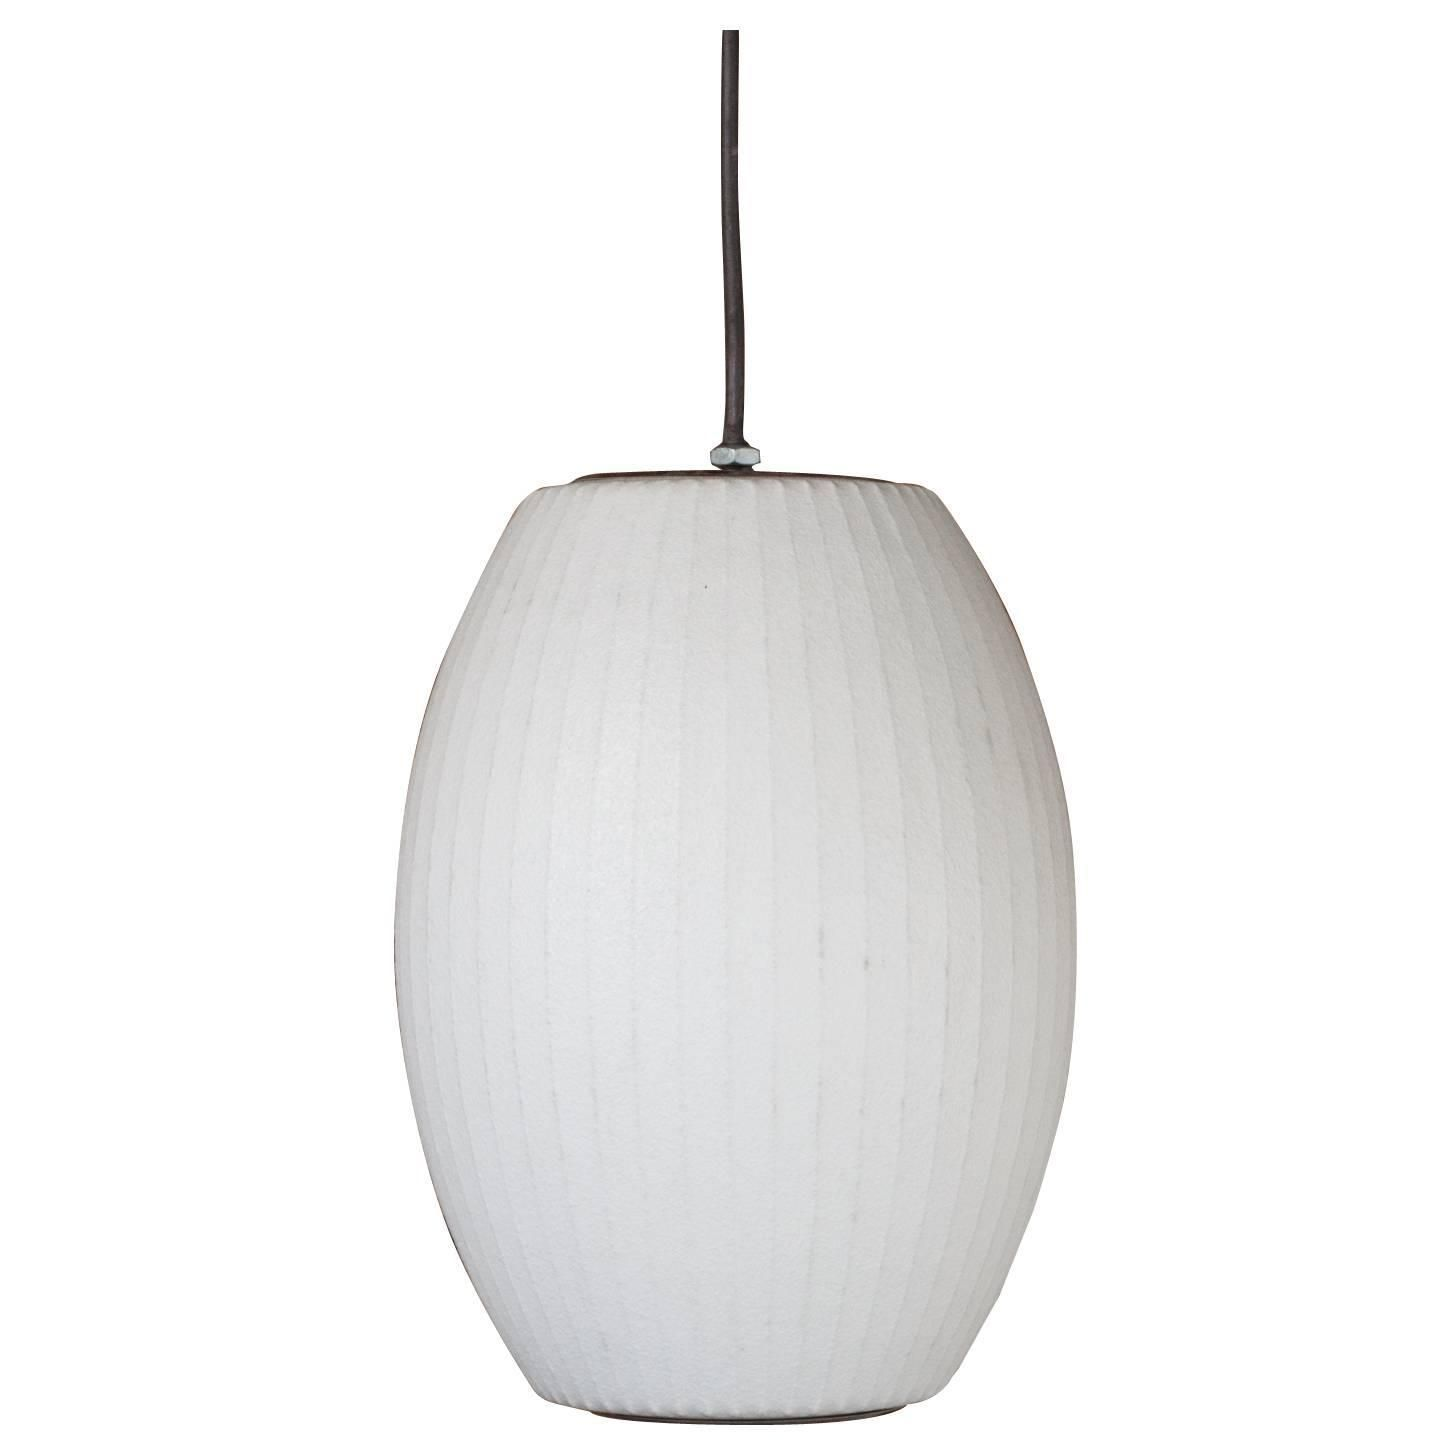 Small cigar pendant light by george nelson george nelson small cigar pendant light by george nelson aloadofball Image collections